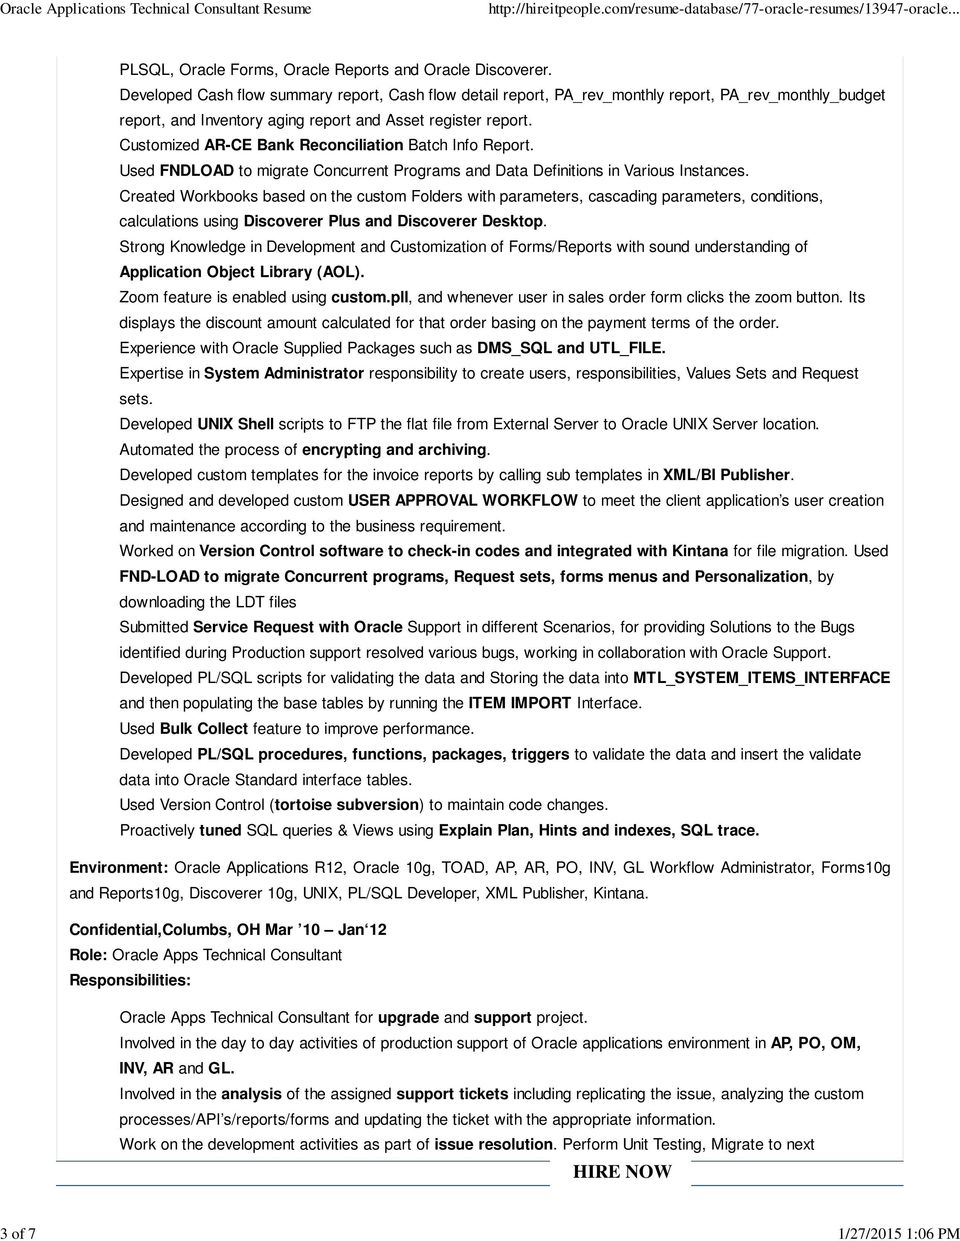 oracle applications technical consultant resume pdf free nursing cover letter examples Resume Oracle Consultant Resume